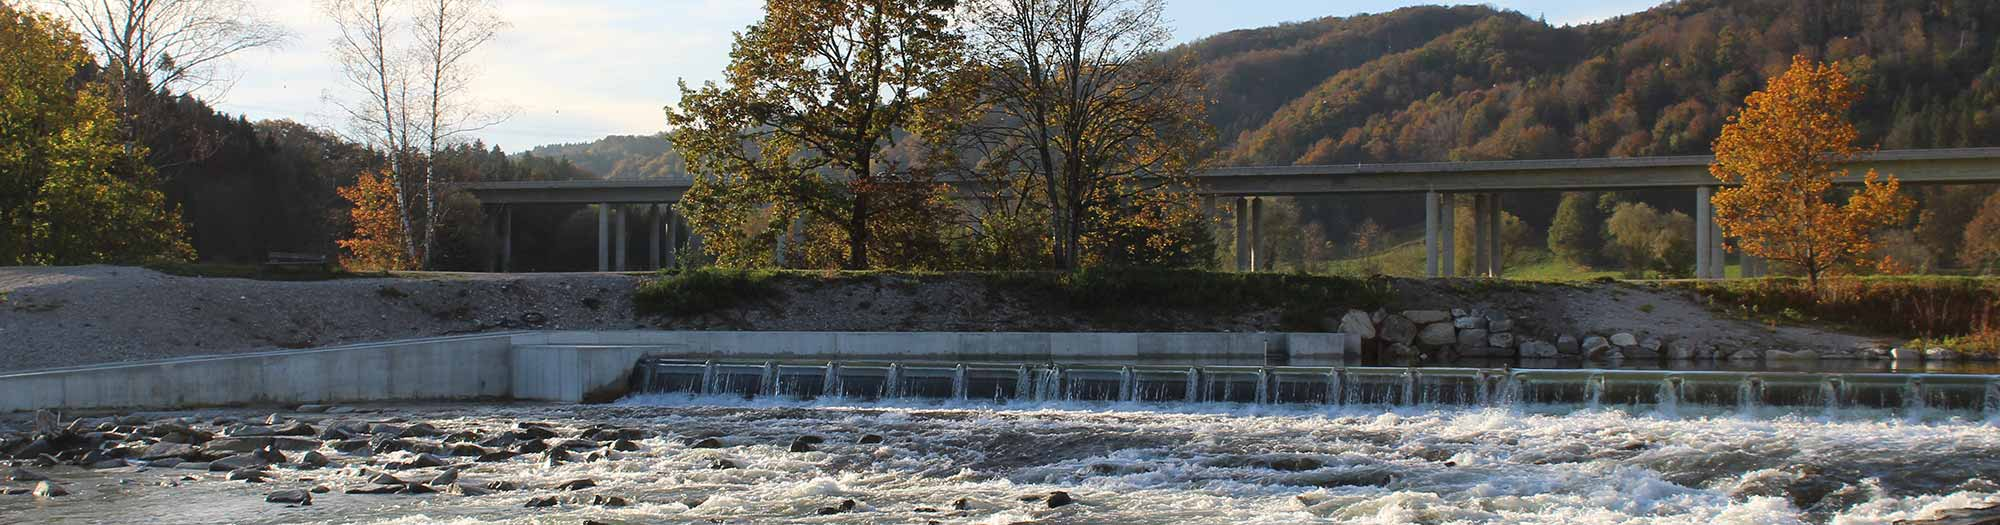 Hydropower solutions for developing<br>and emerging counties